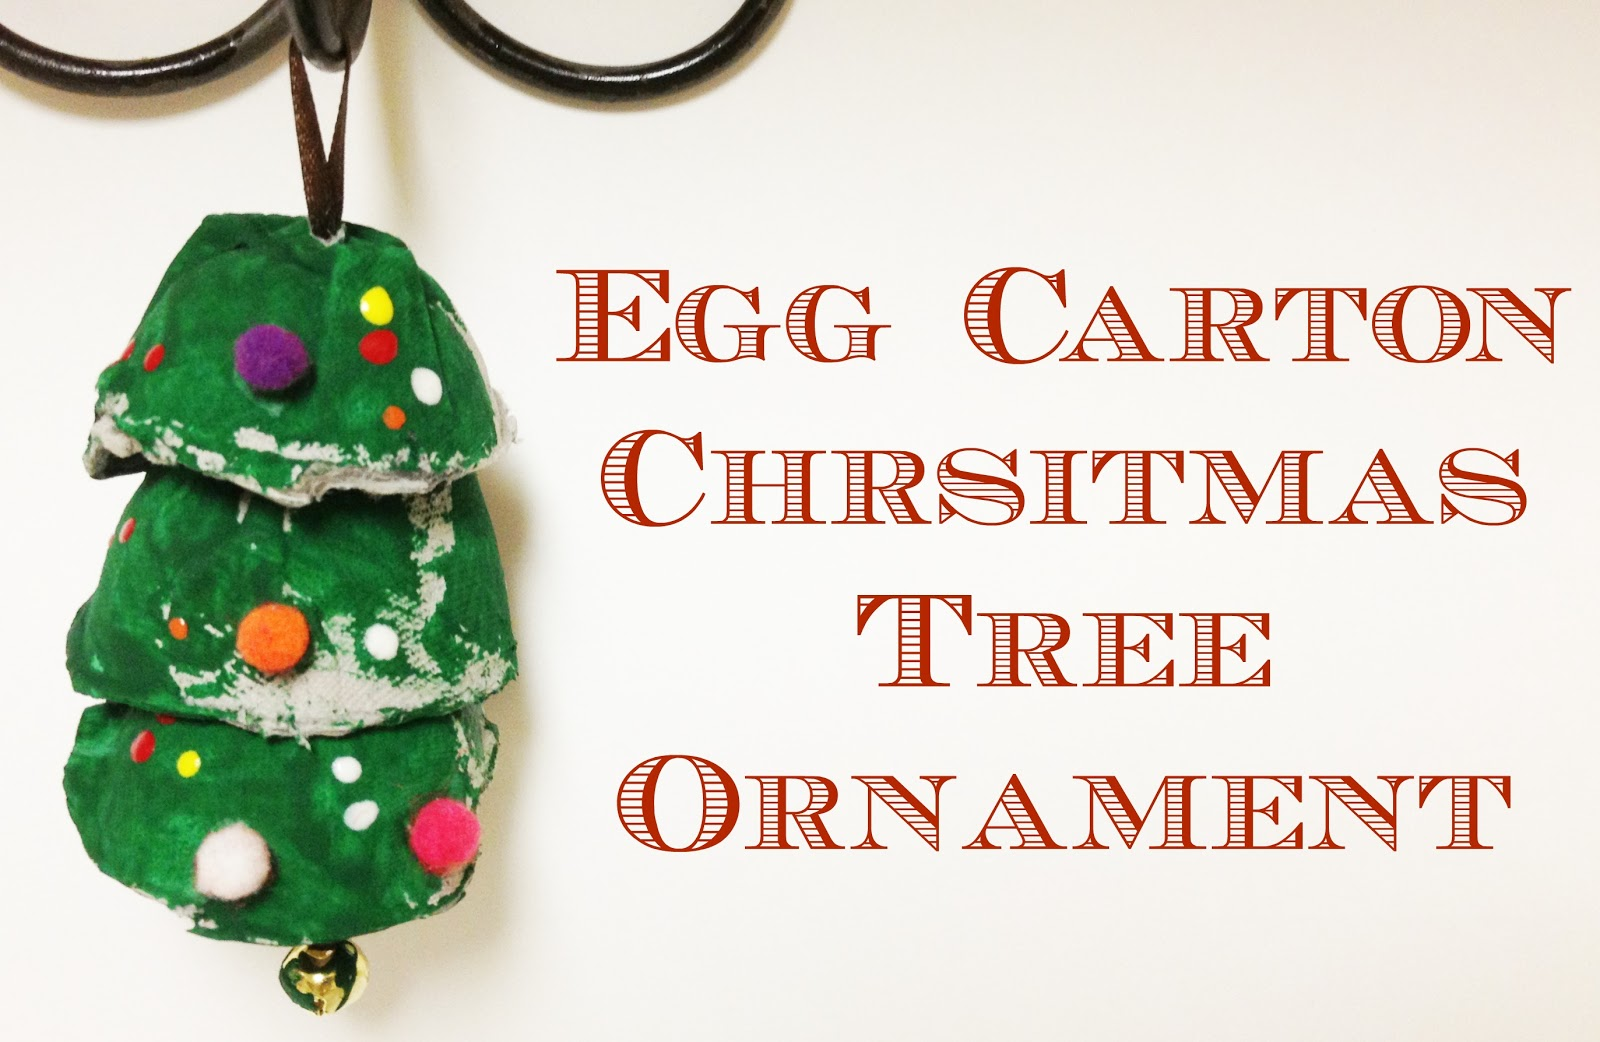 Tutus and tea parties egg carton christmas tree ornament for Christmas decorations using egg cartons